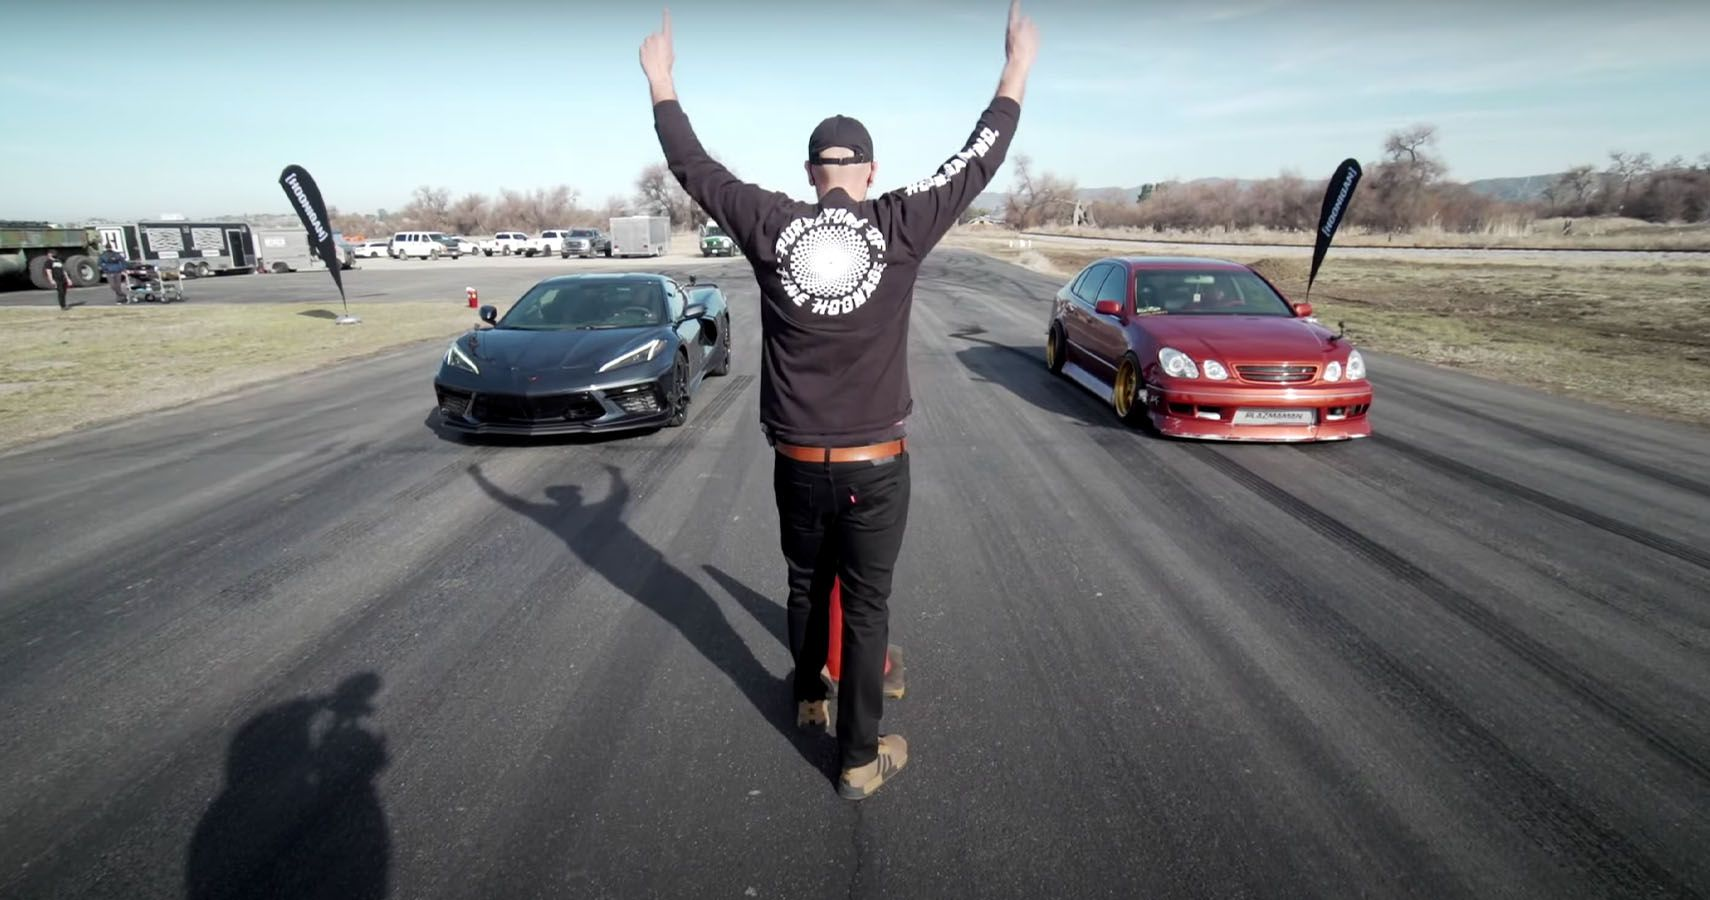 Heavily Tuned Lexus GS 300 Drag Races A Corvette C8 In Hoonigan 'This Vs That'